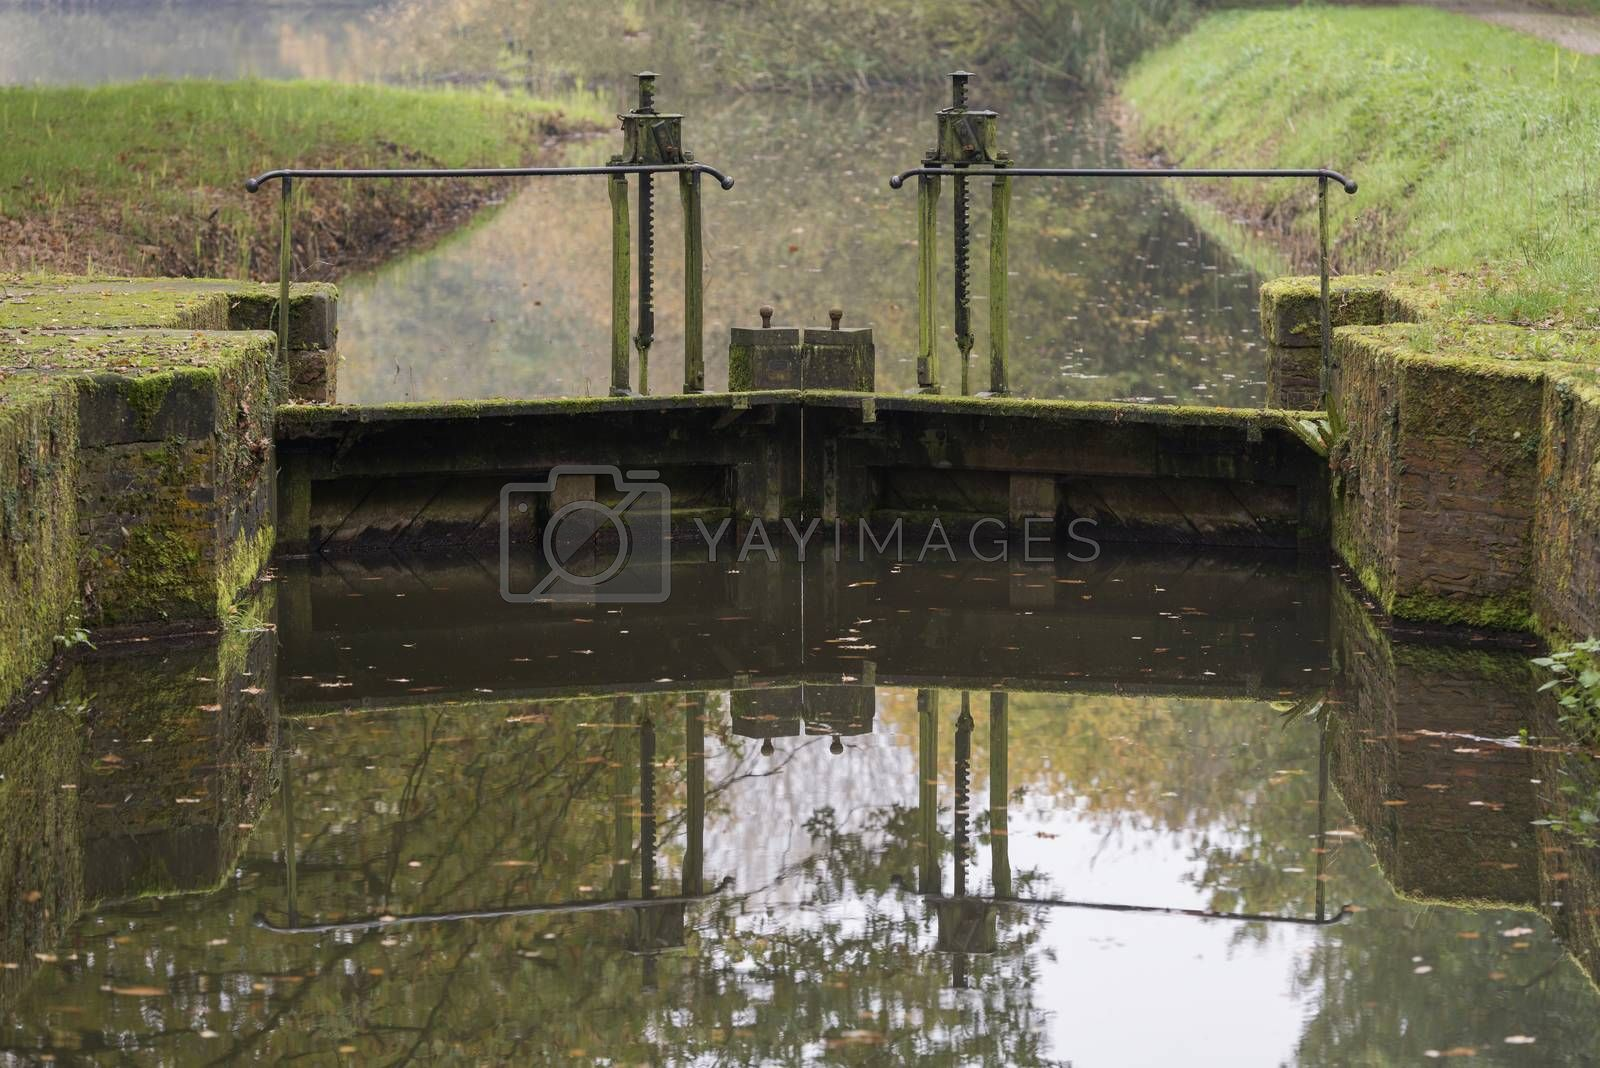 The authentic and monumental lock next to the Mallumse mill in Eibergen in the region Achterhoek in the Netherlands